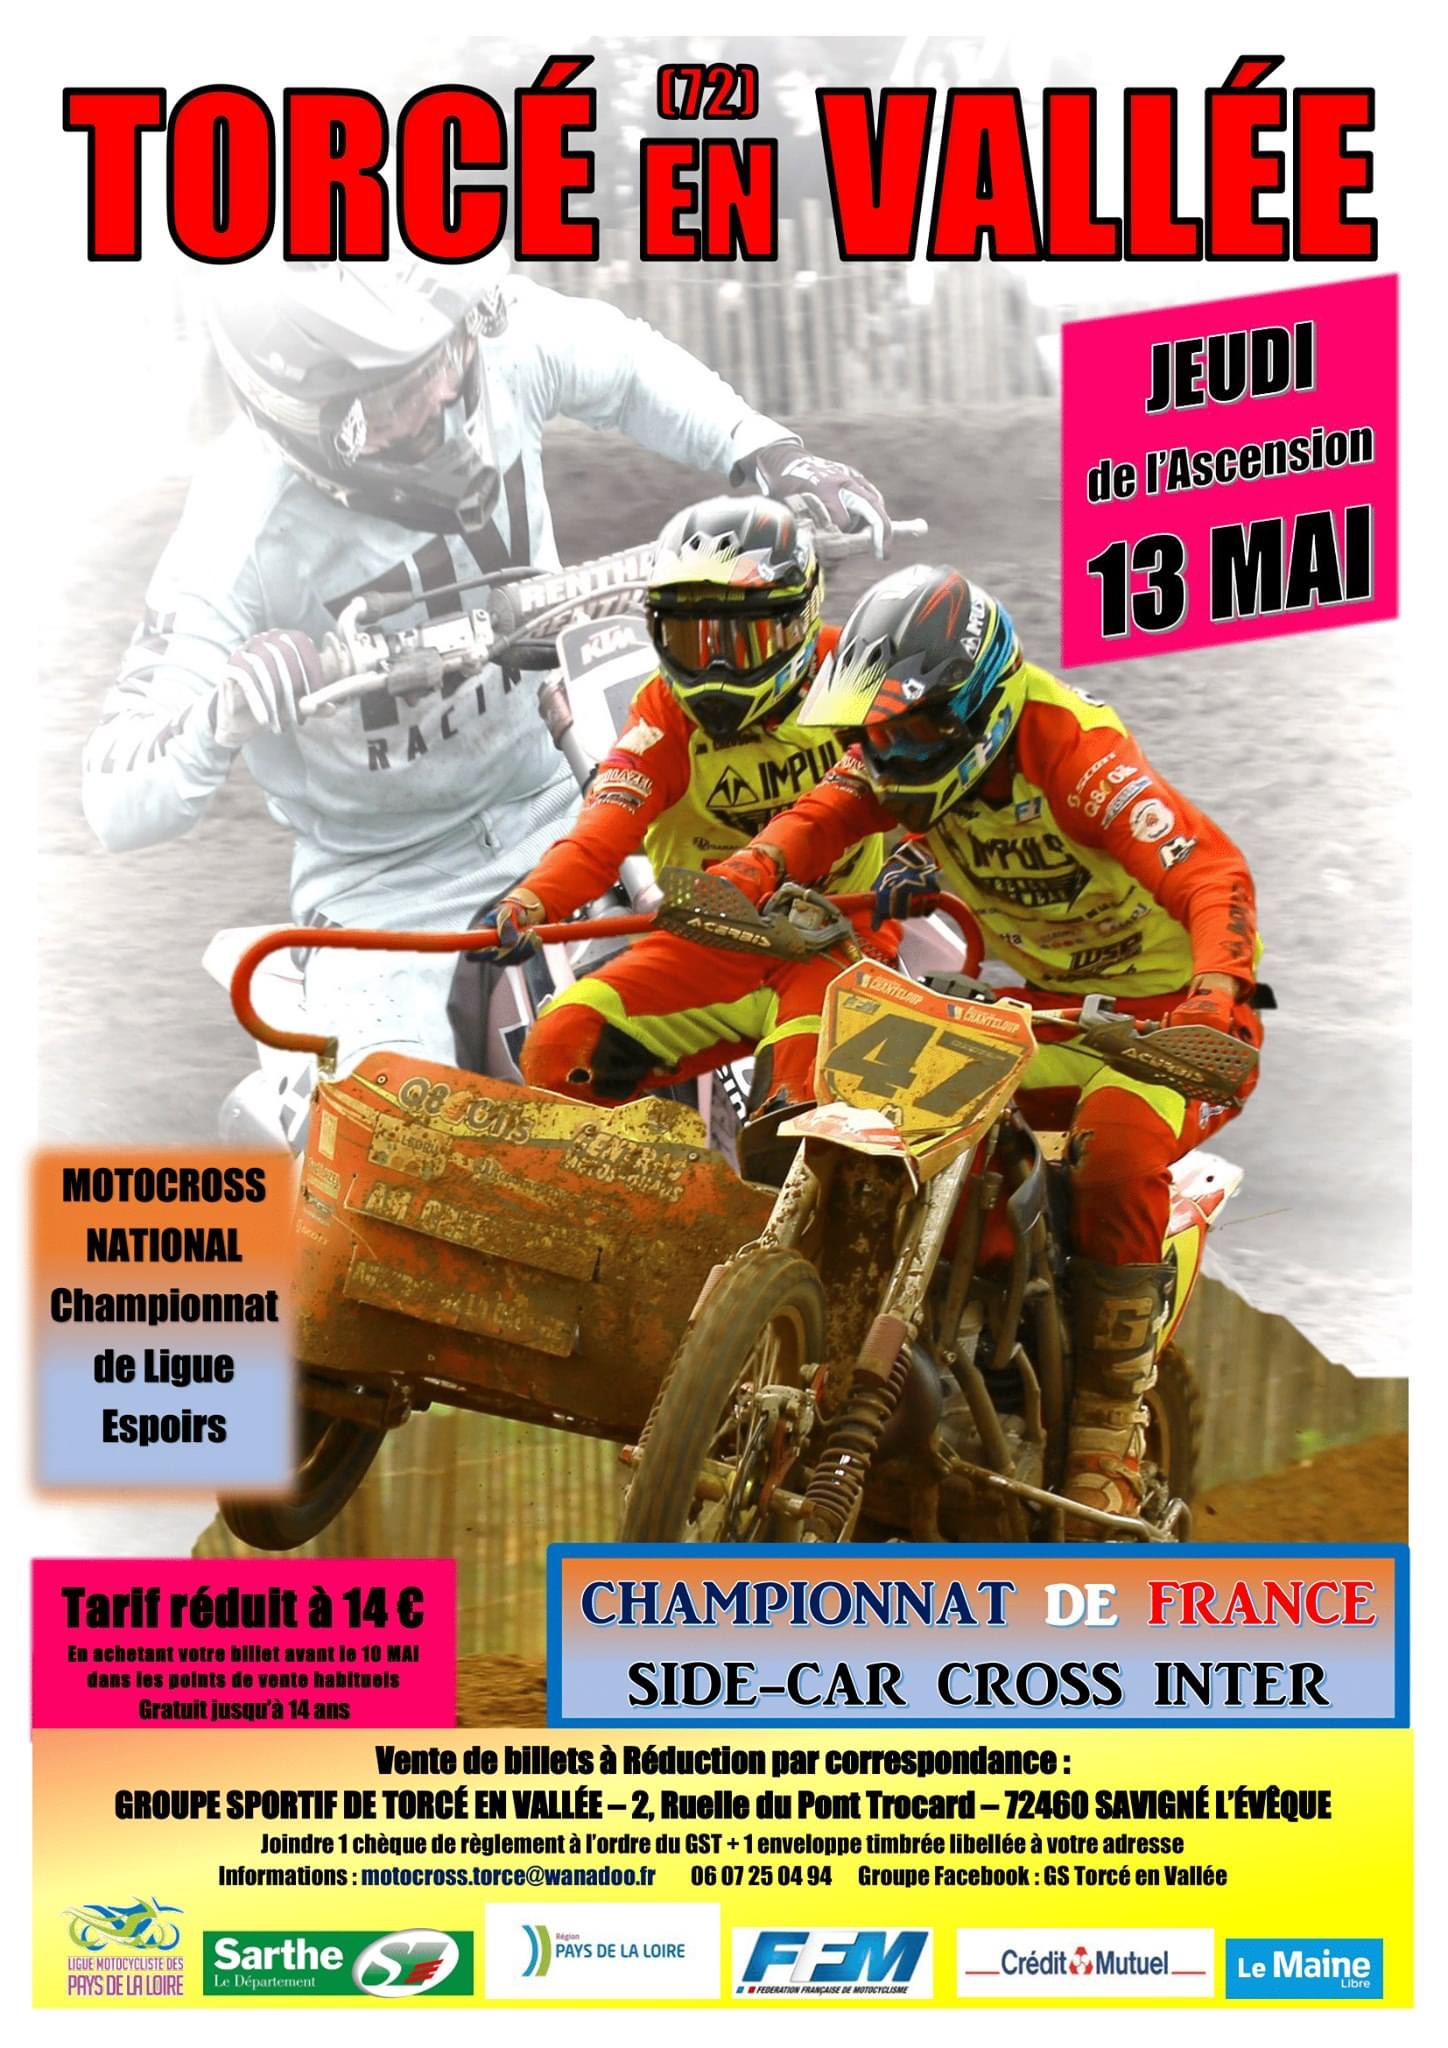 Torce en vallee 13 mei - May 13, 2021